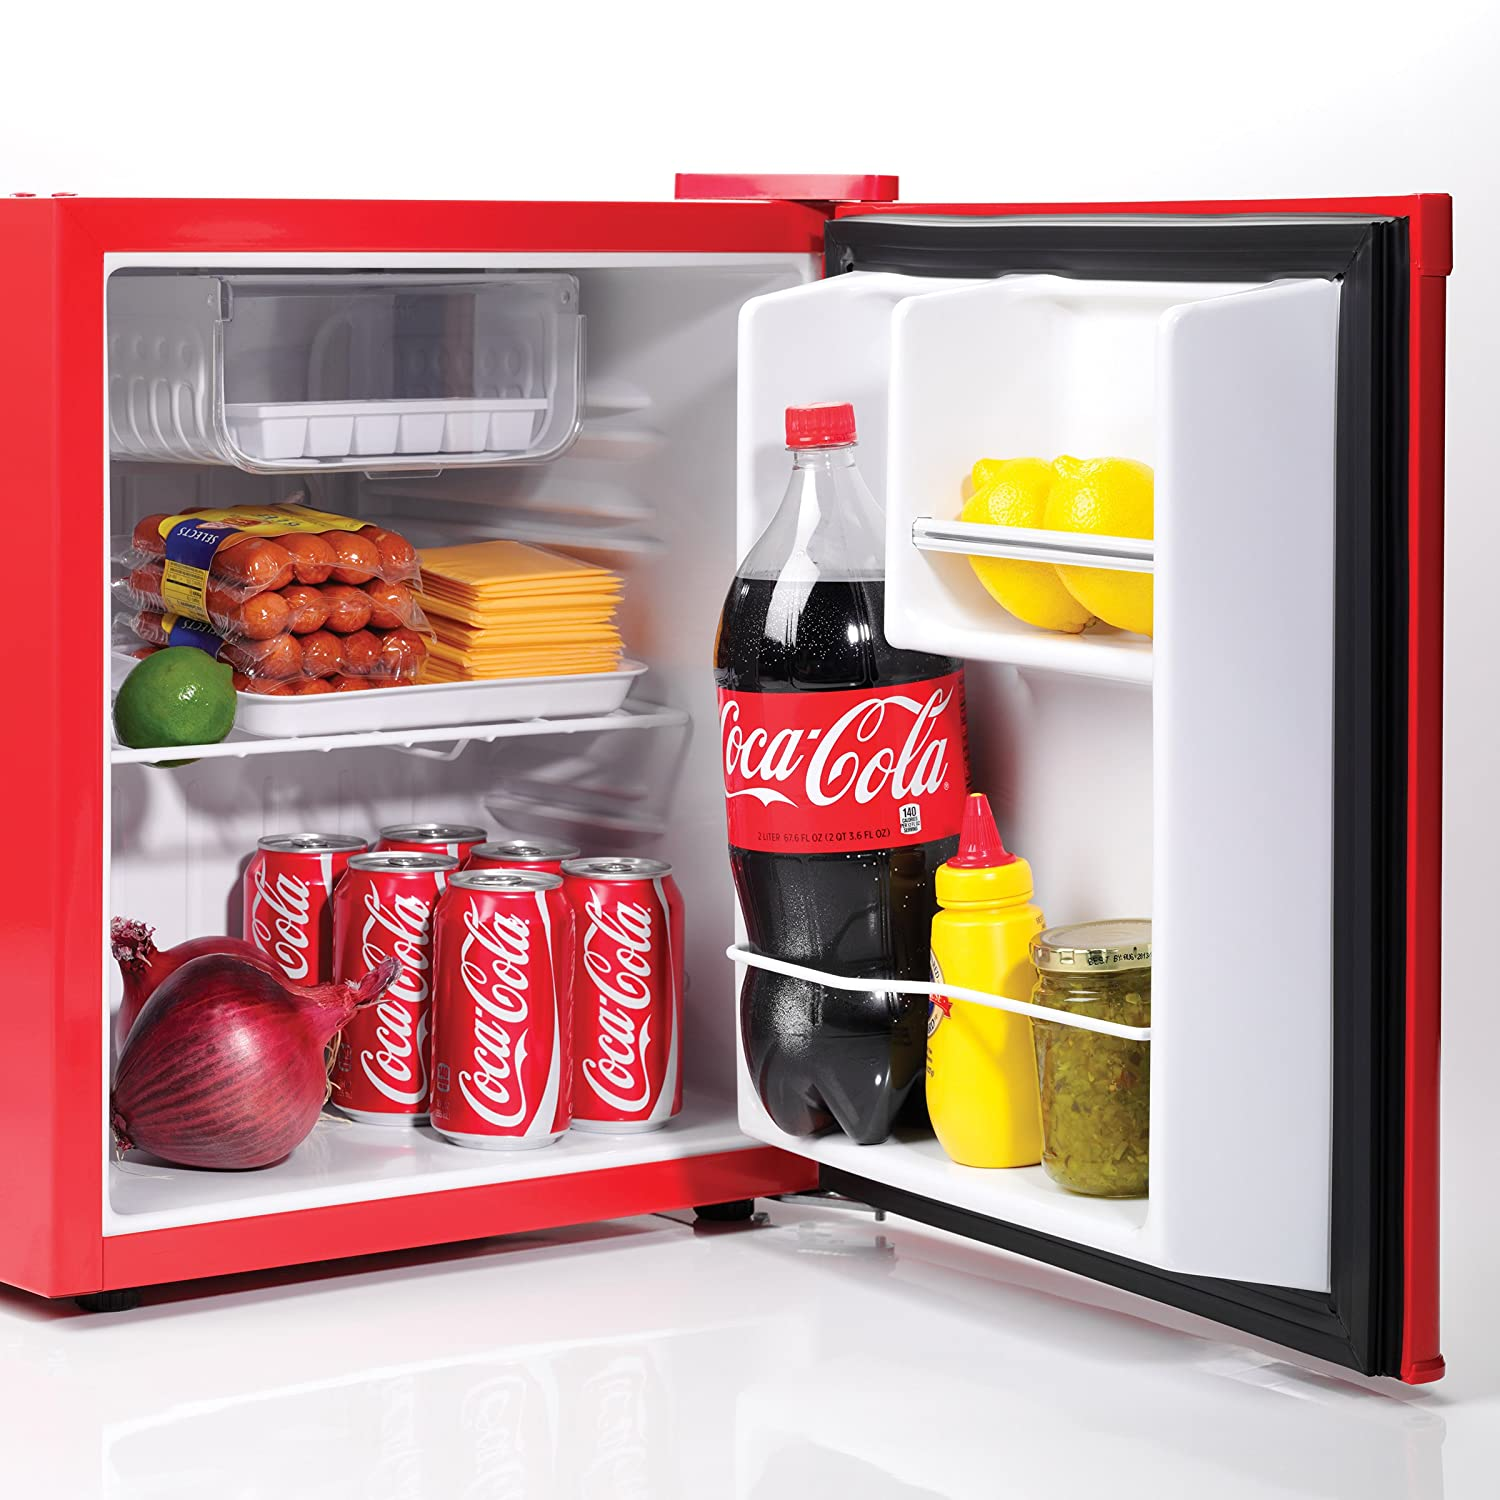 91785d45 Amazon.com: Nostalgia CRF170COKE Coca-Cola 1.7-Cubic Foot Refrigerator:  Refrigerator Magnets: Kitchen & Dining